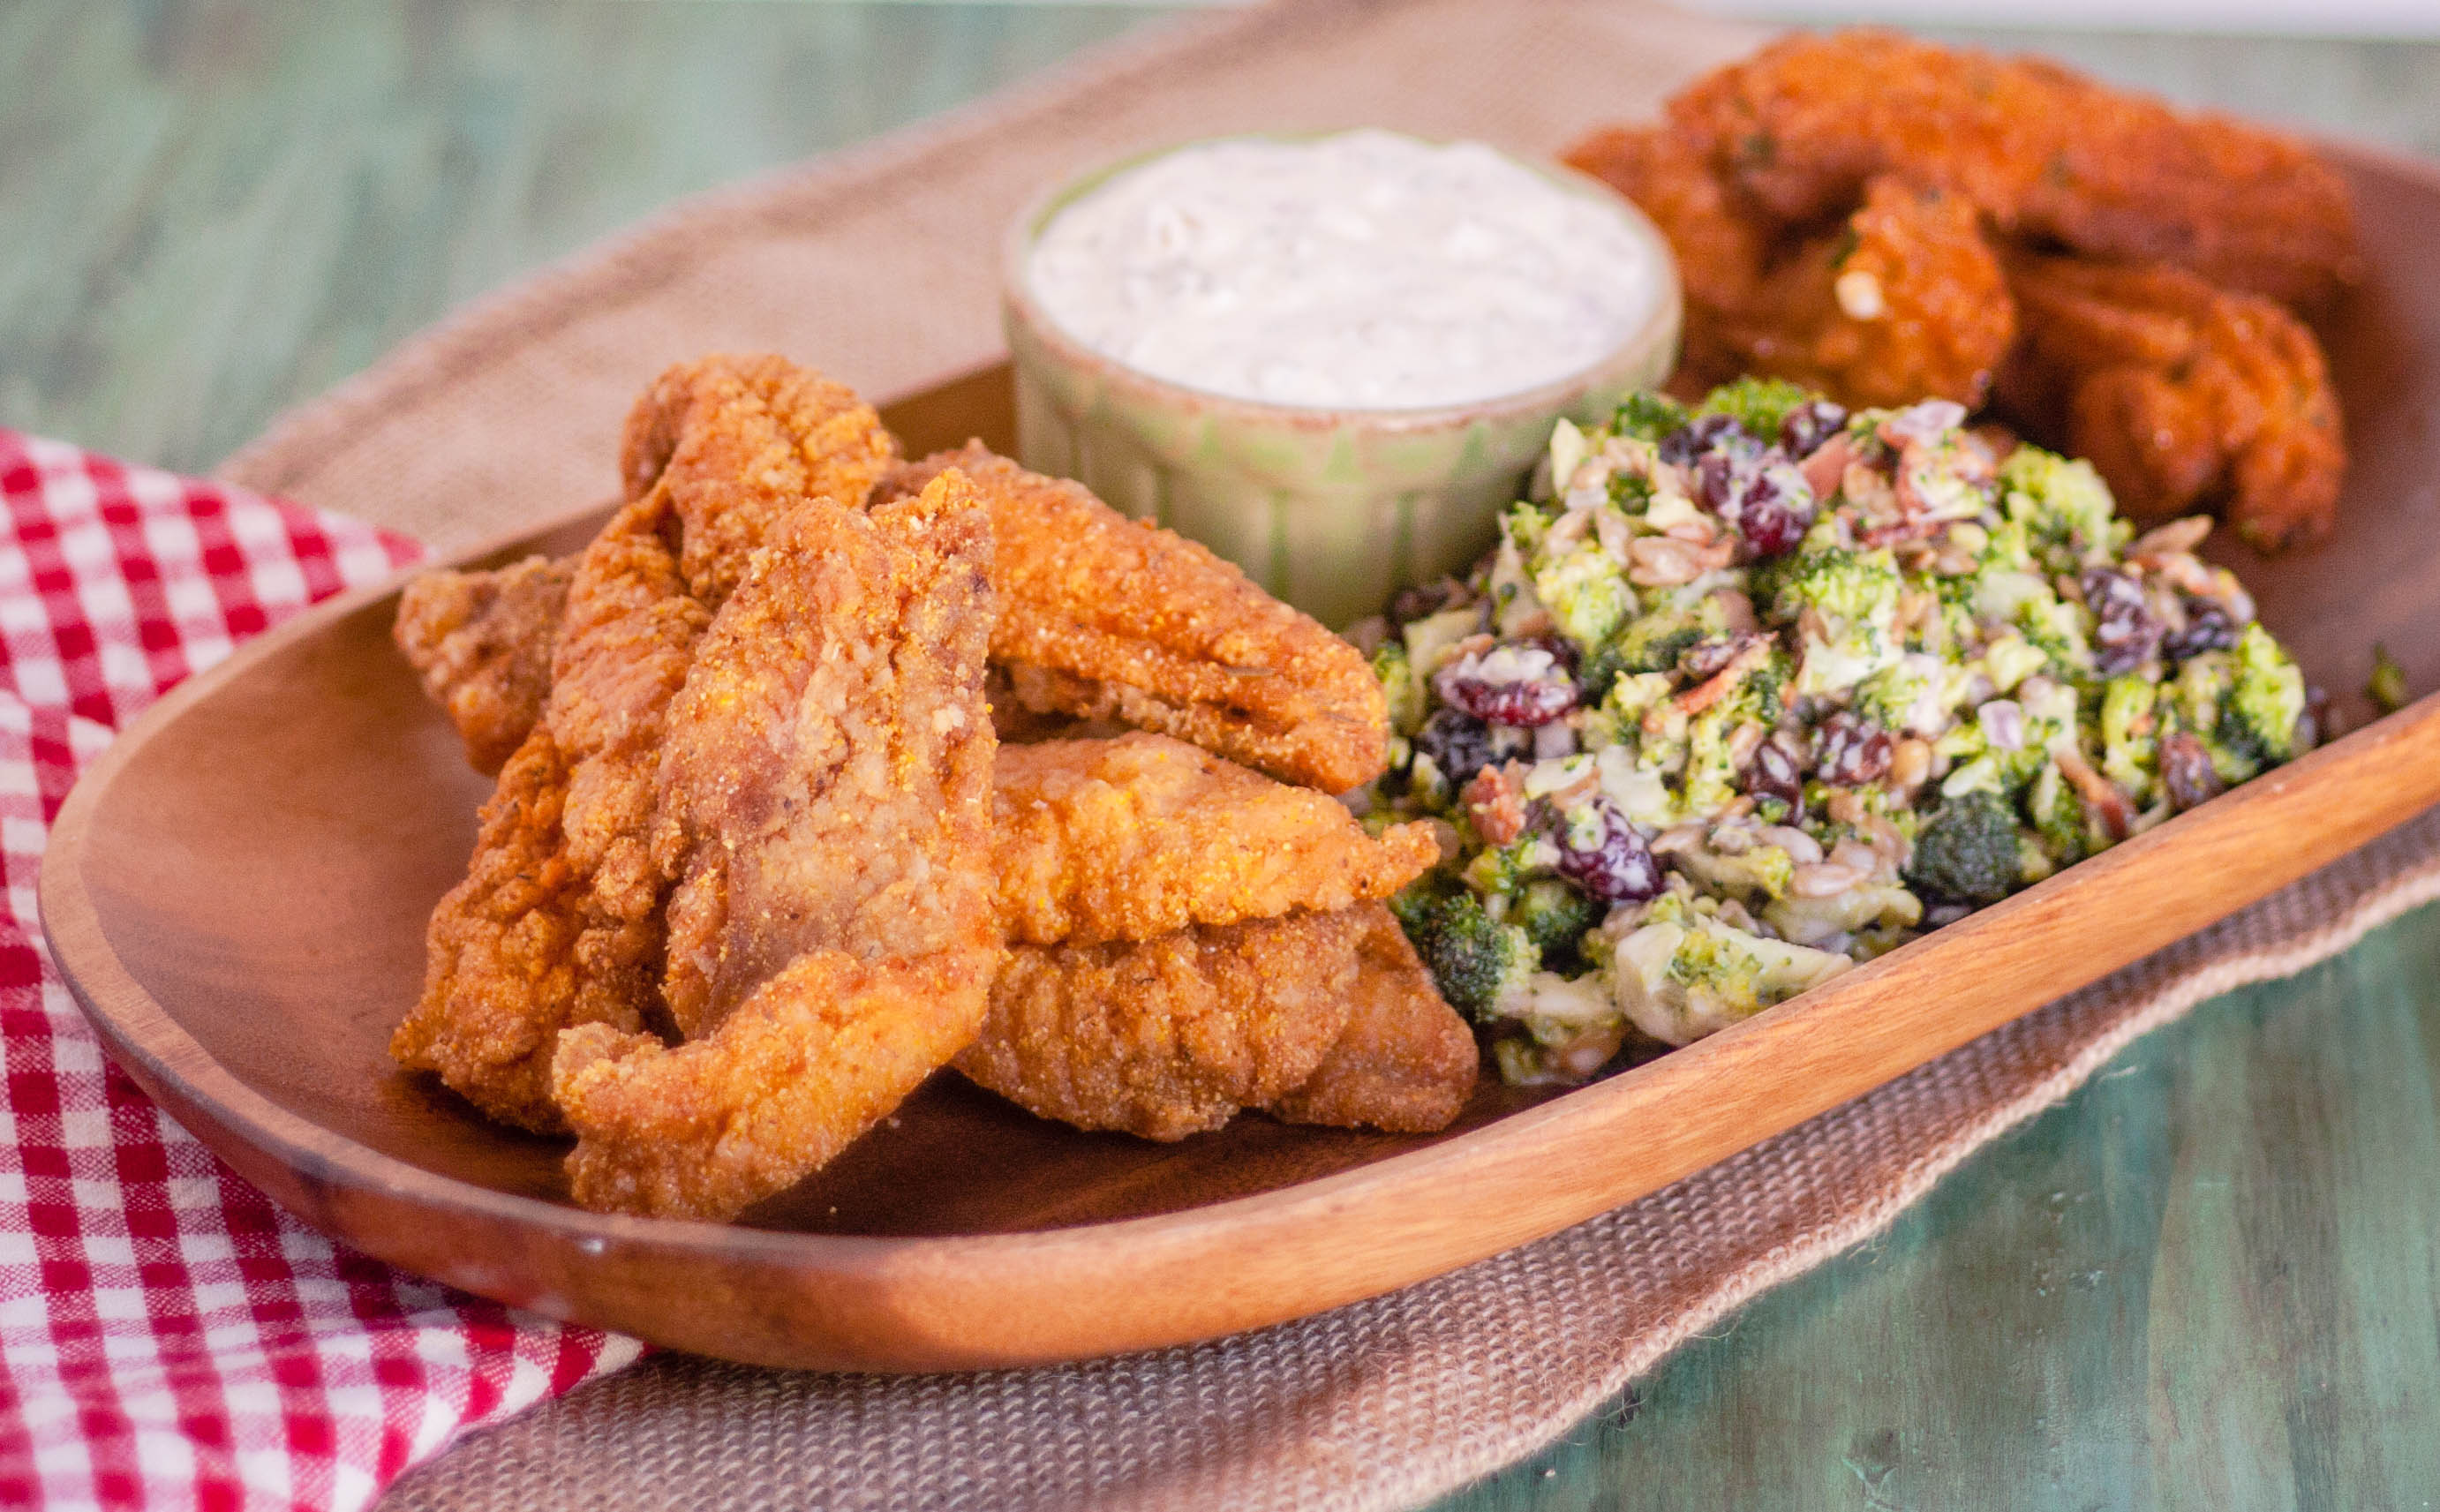 Cajun fried fish with sauce and coleslaw